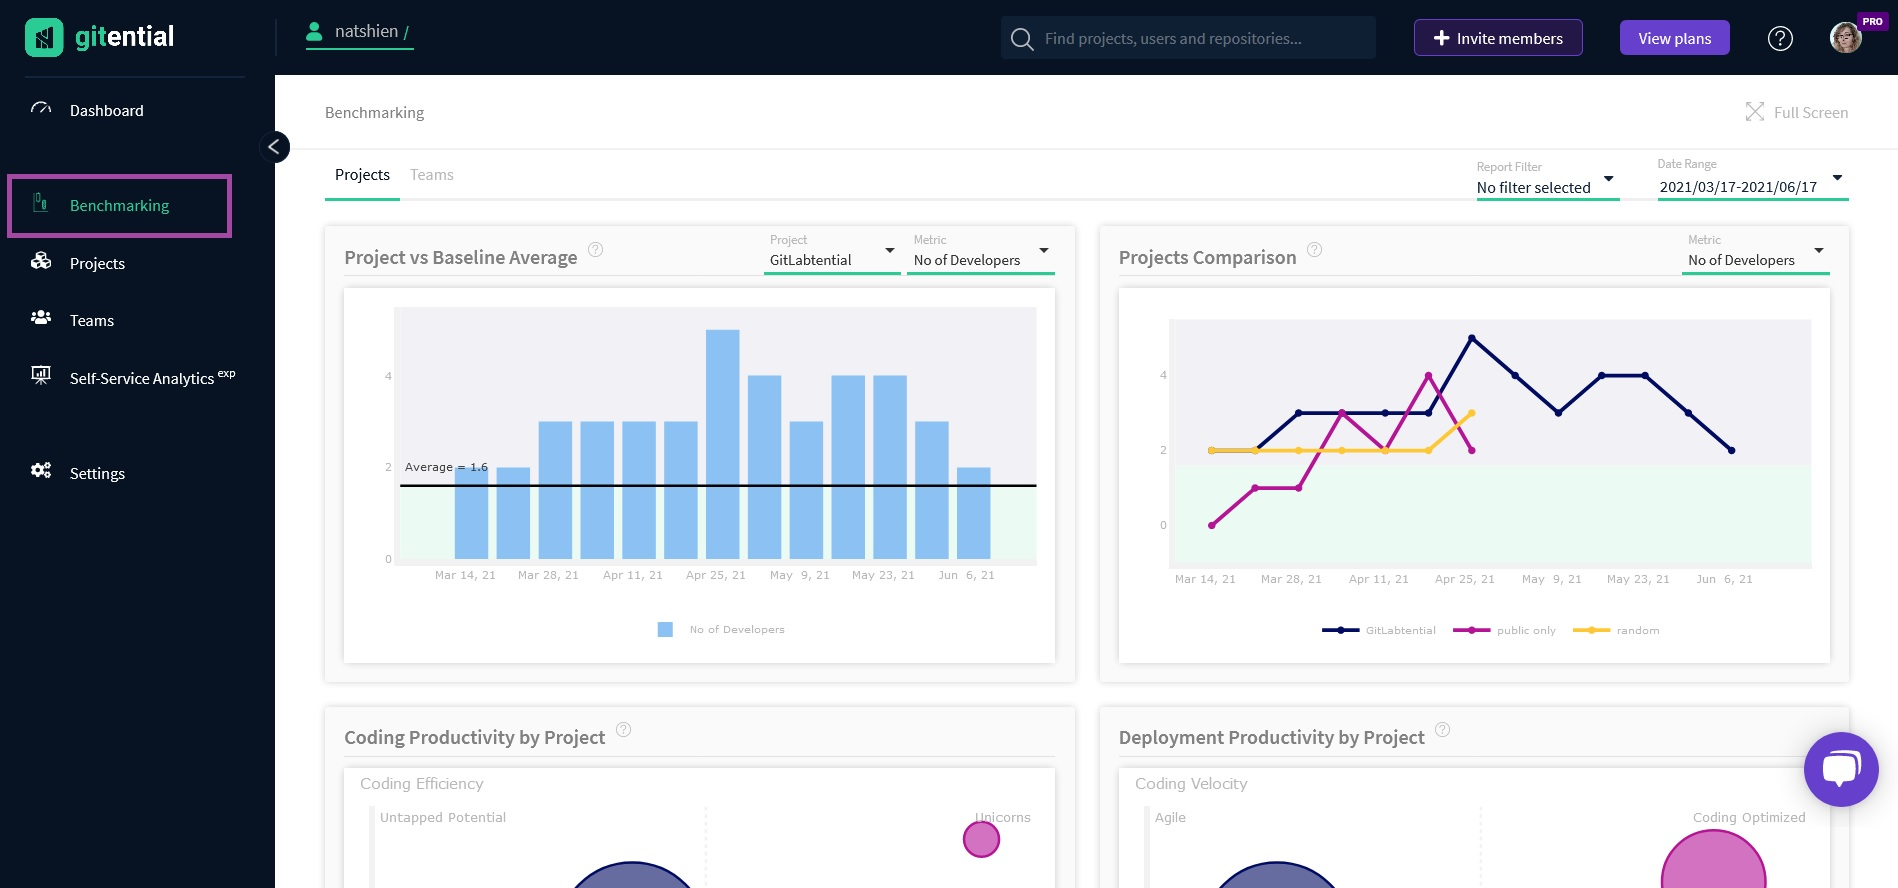 One-click project refresh, real-time status check, benchmarking view for cross-project comparison